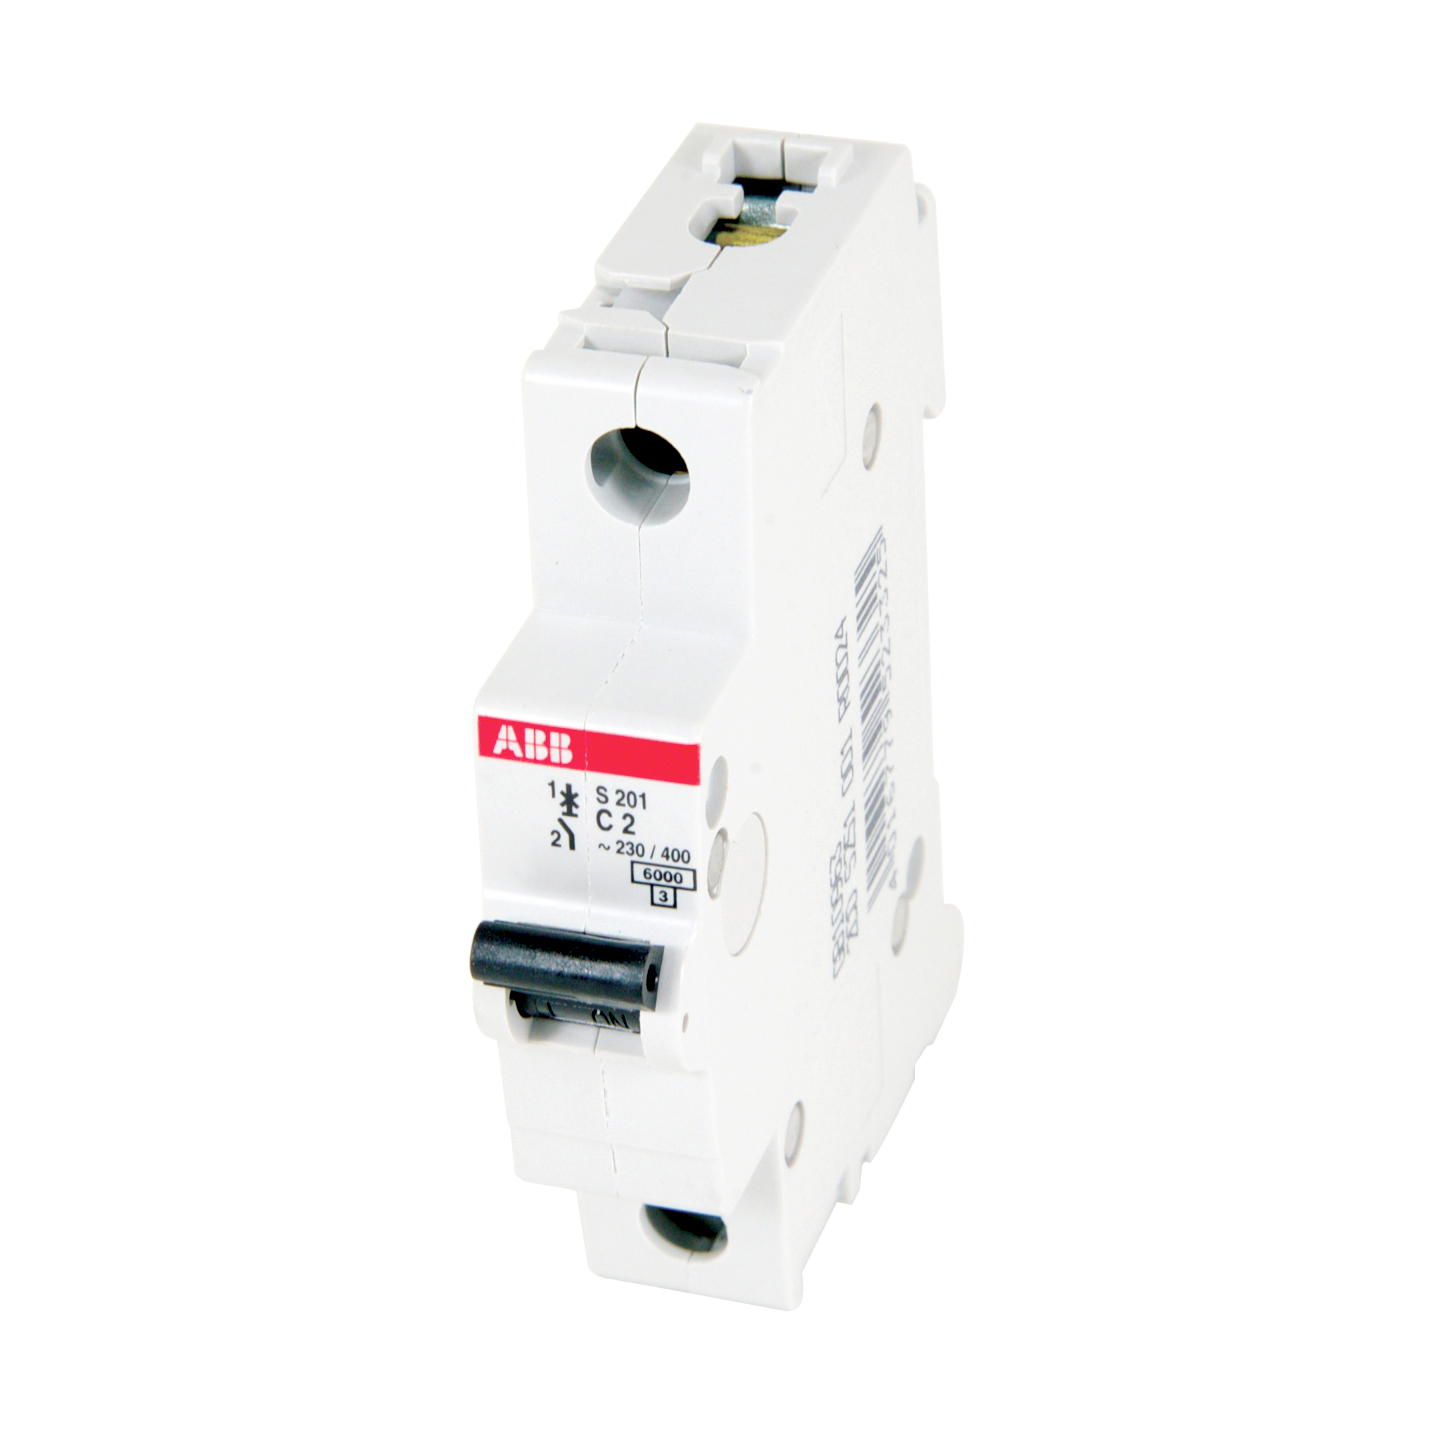 ABB S201-C2 1 pole, 2 amps rated at 480Y/277 VAC, UL 1077 series miniature circuit breaker with thermal-magnetic trip device, C trip curve, and 6kA interrupt current rating